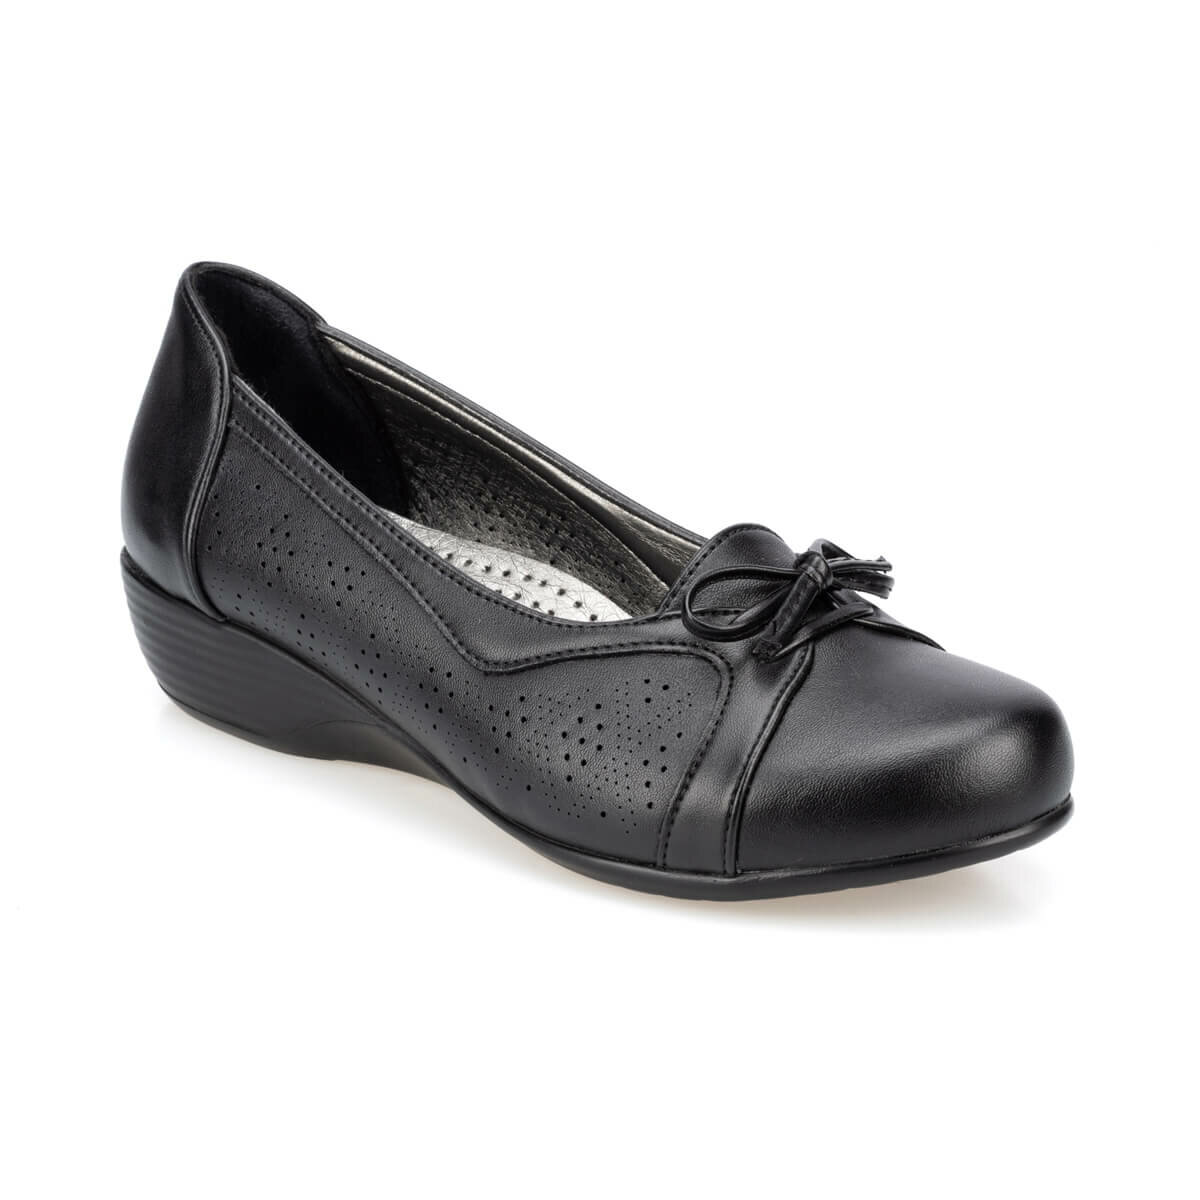 FLO 91.158479.Z Black Women 'S Classic Shoes Polaris